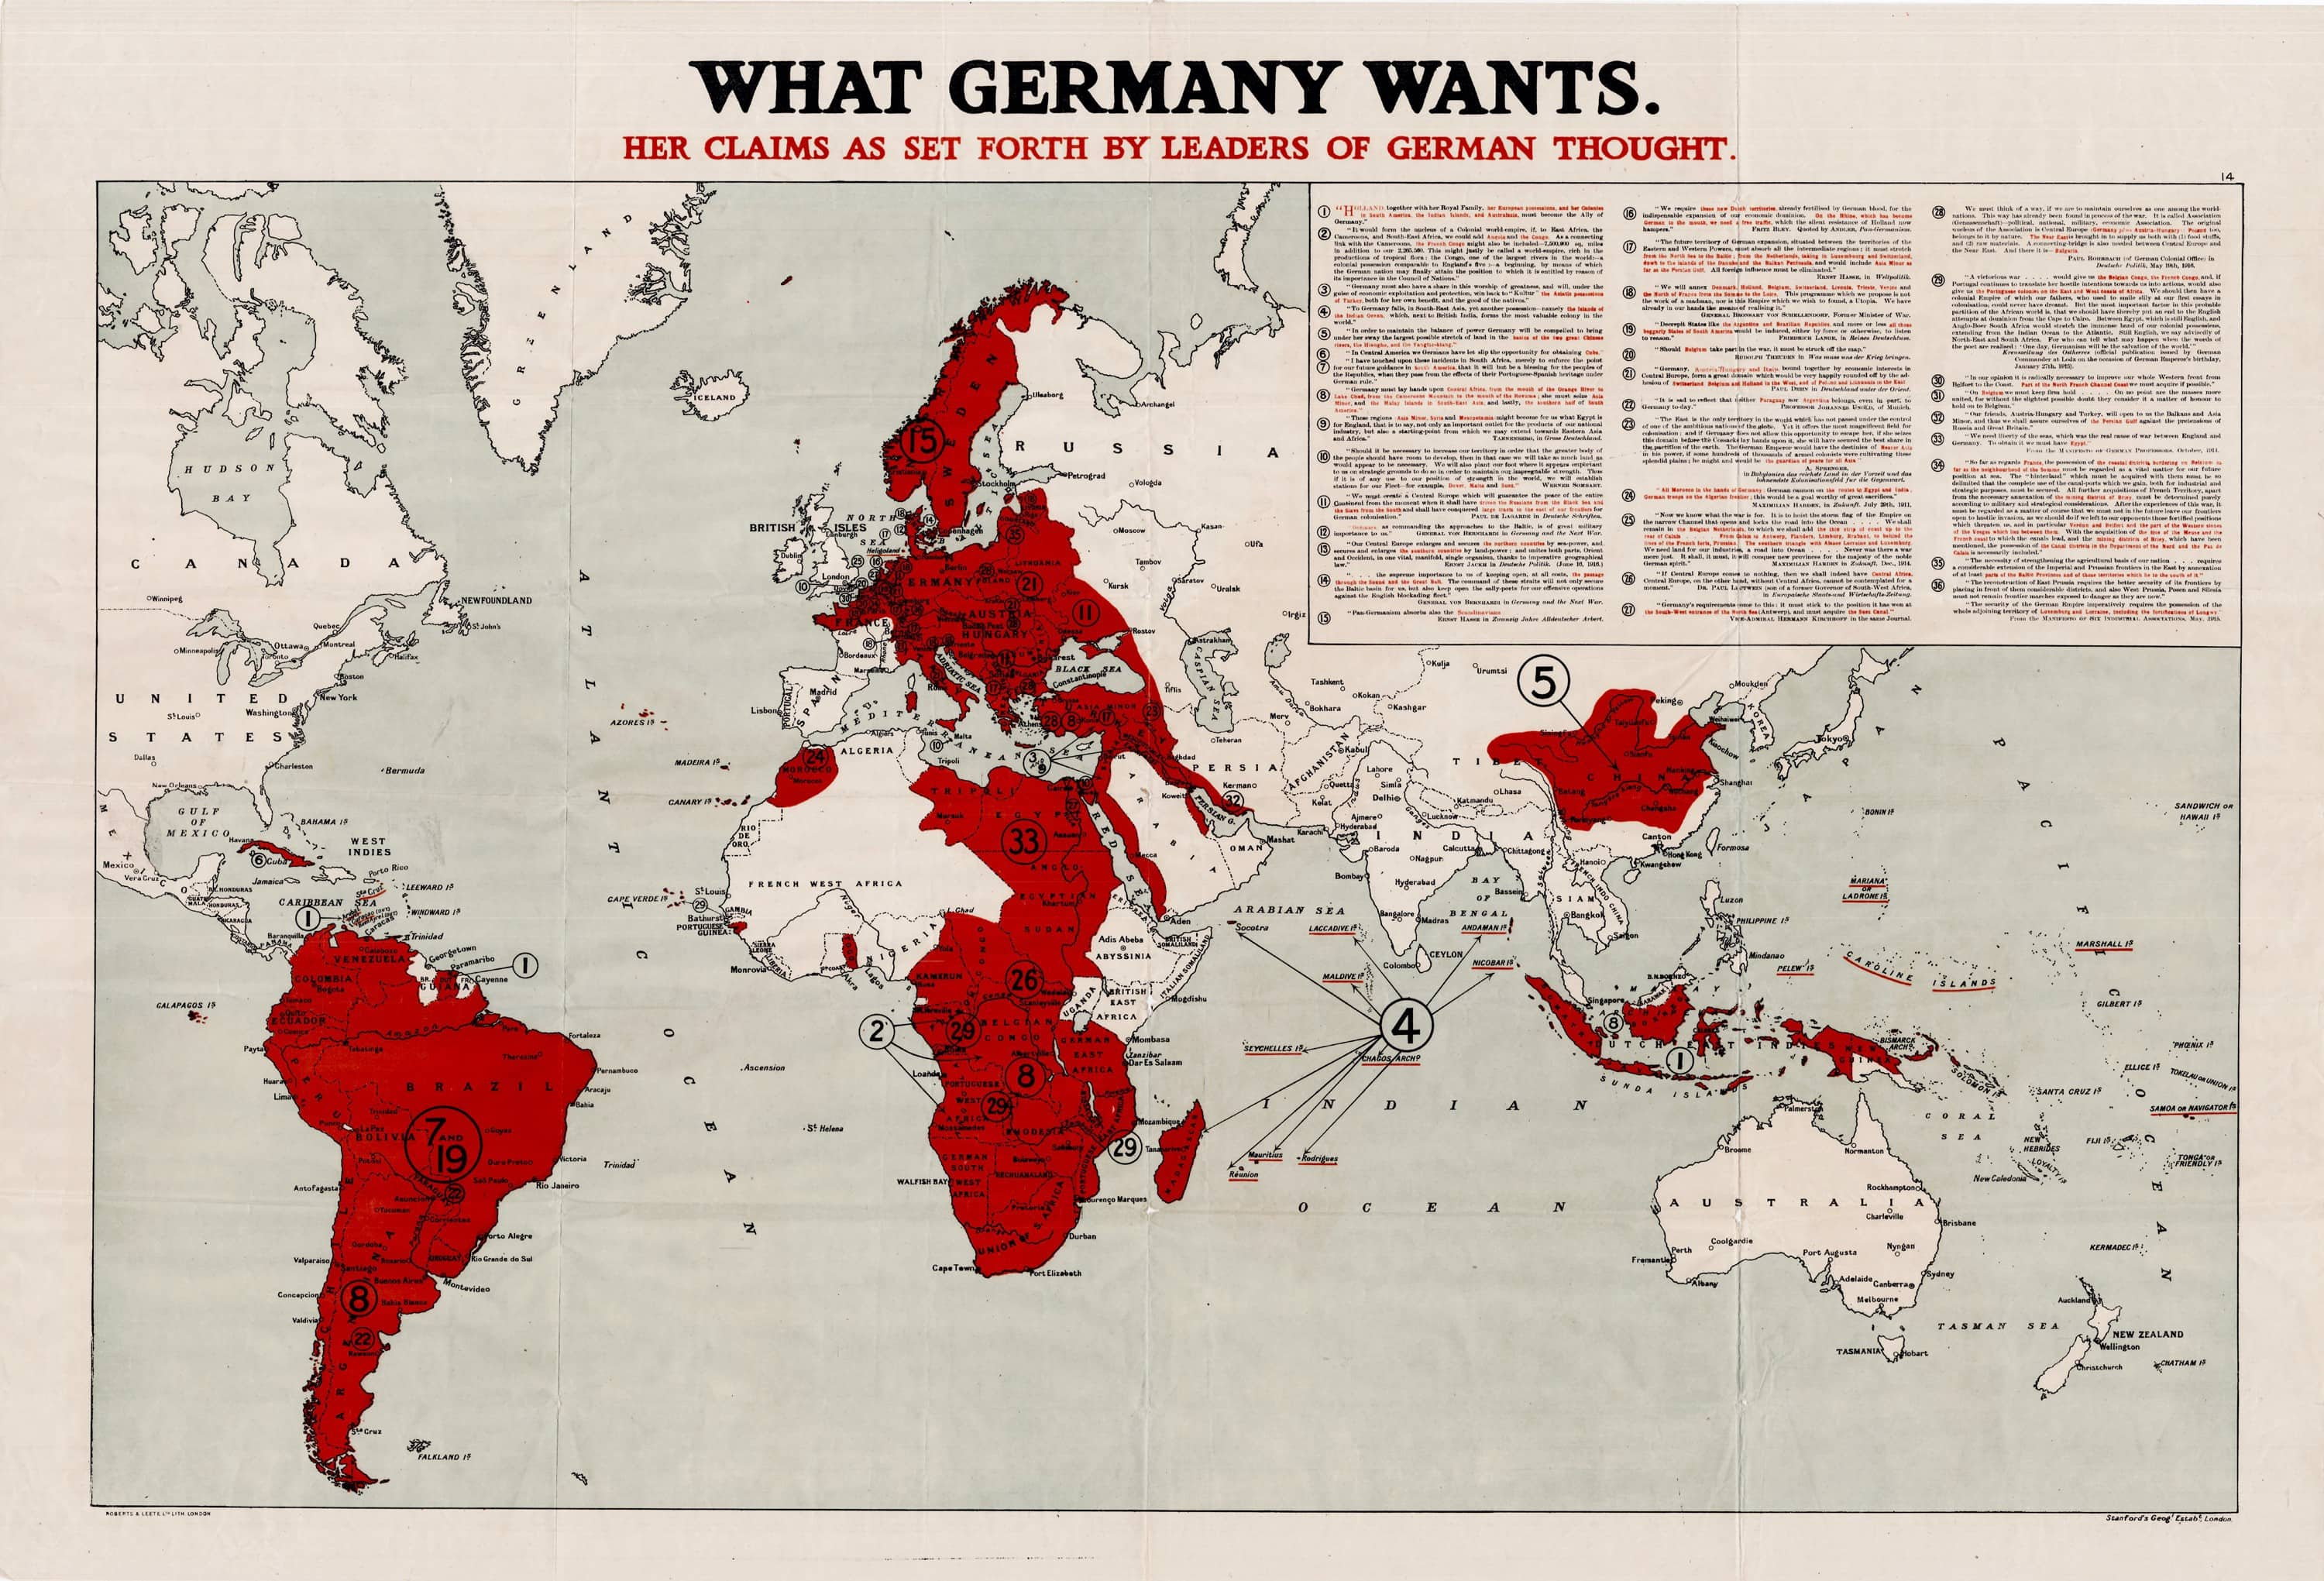 BRM2472 What Germany Wants_lowres 1 3000x2041